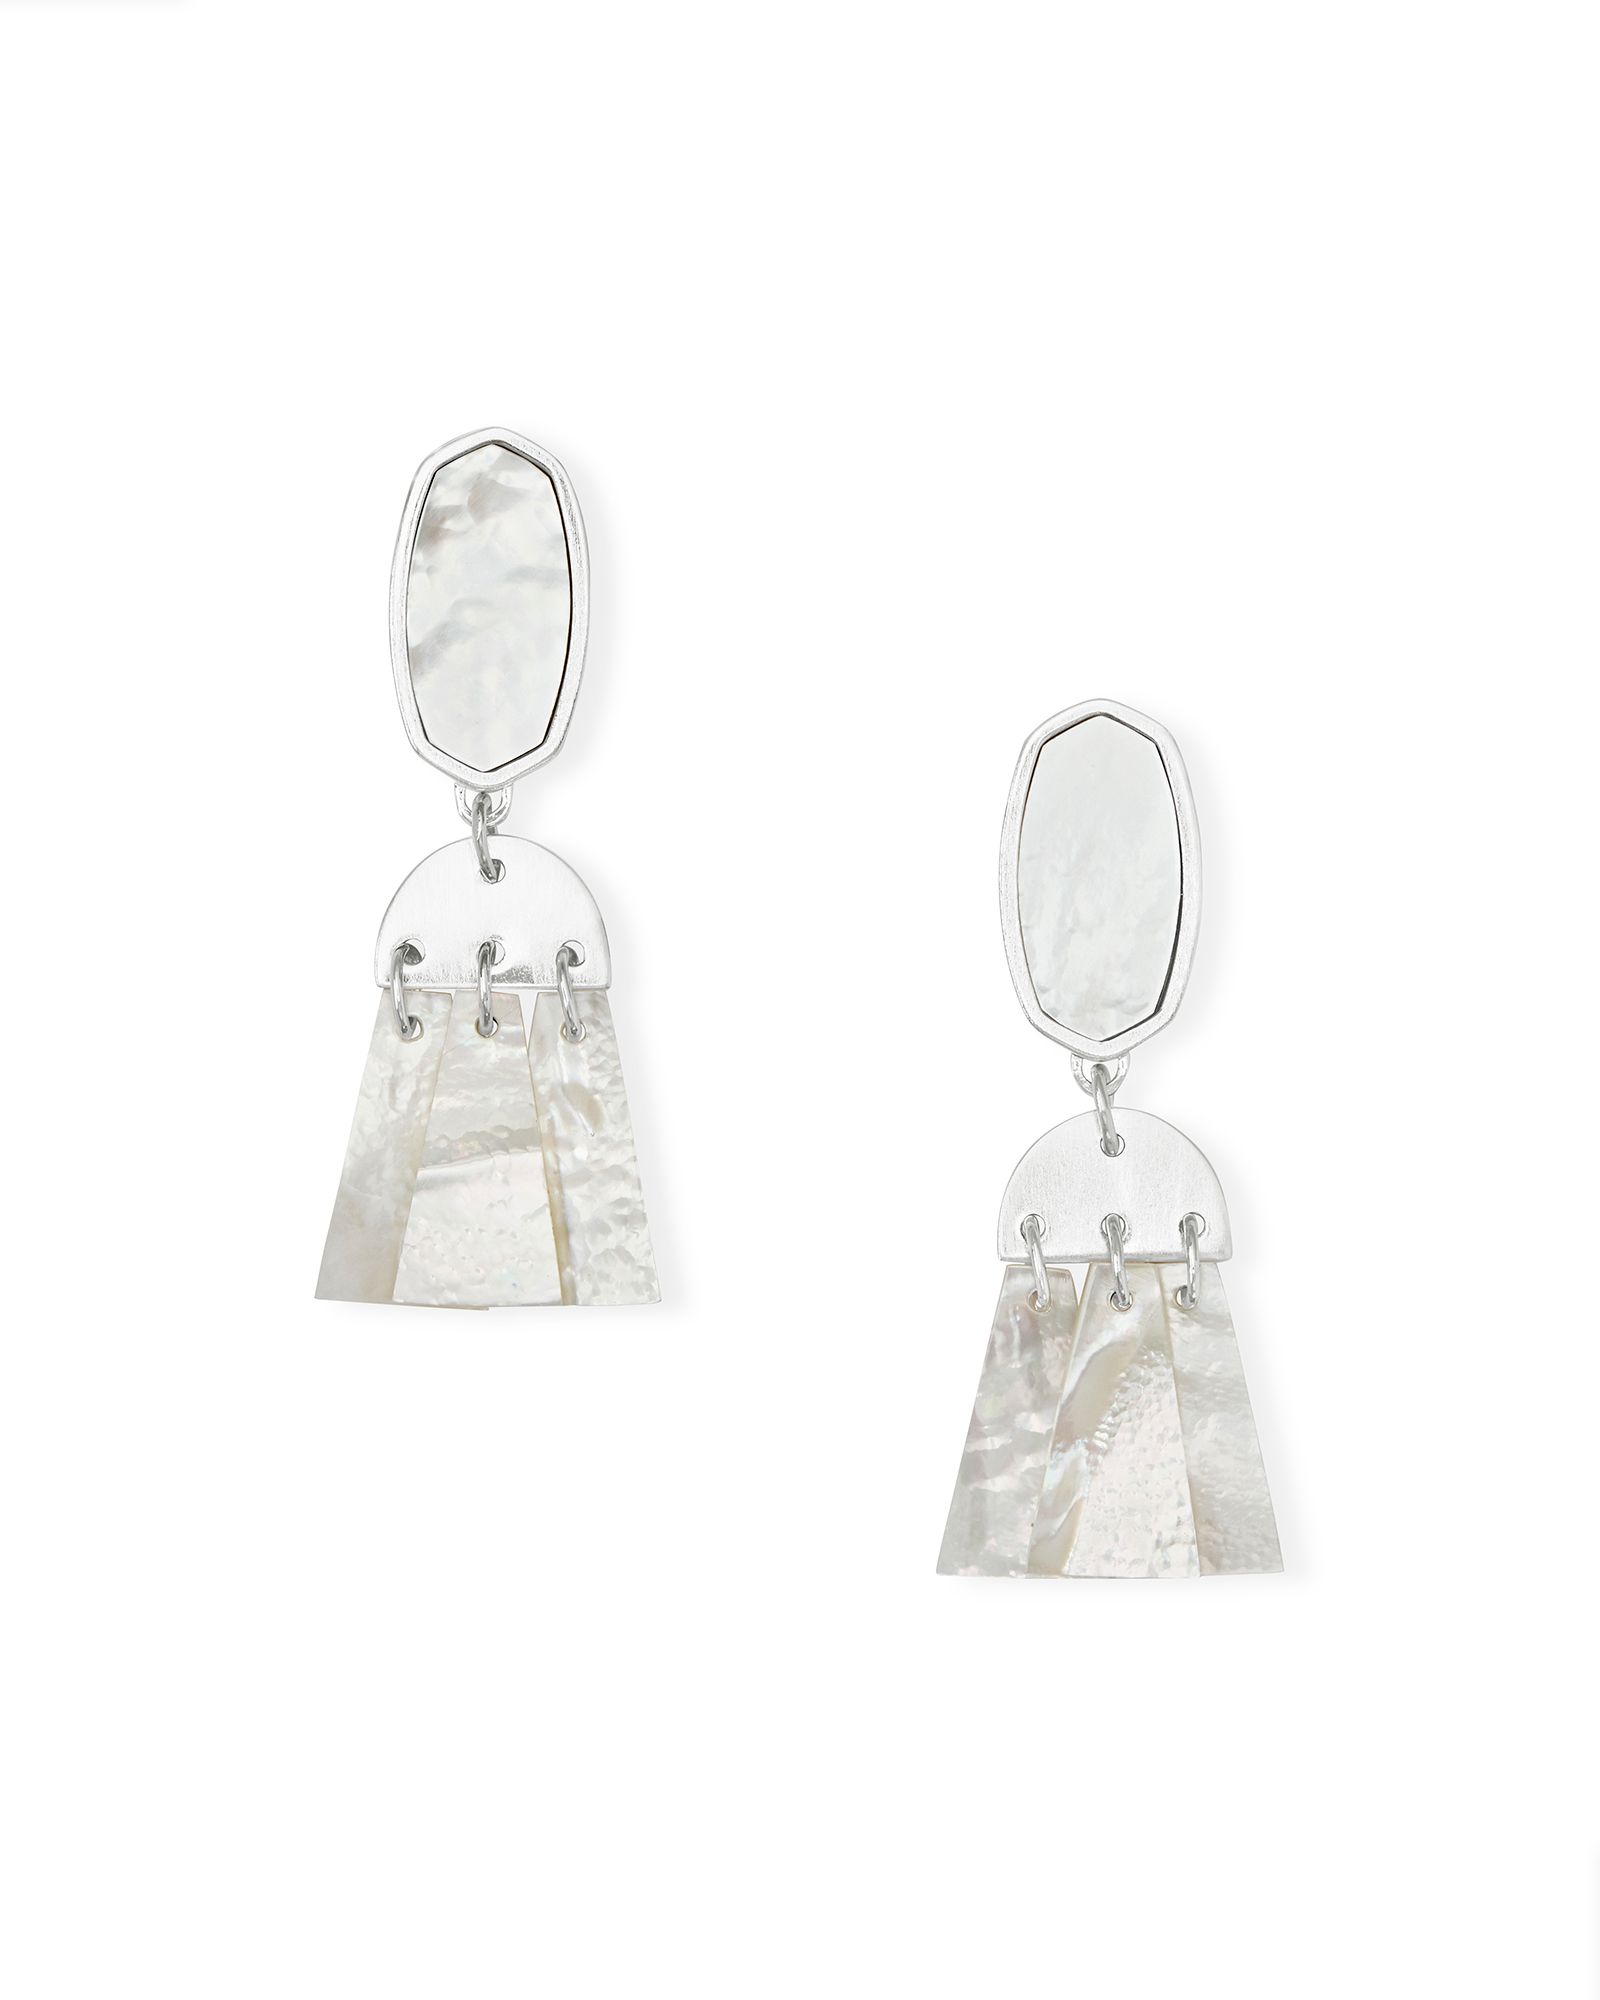 Noah Silver Statement Earrings in Ivory Mother-of-Pearl